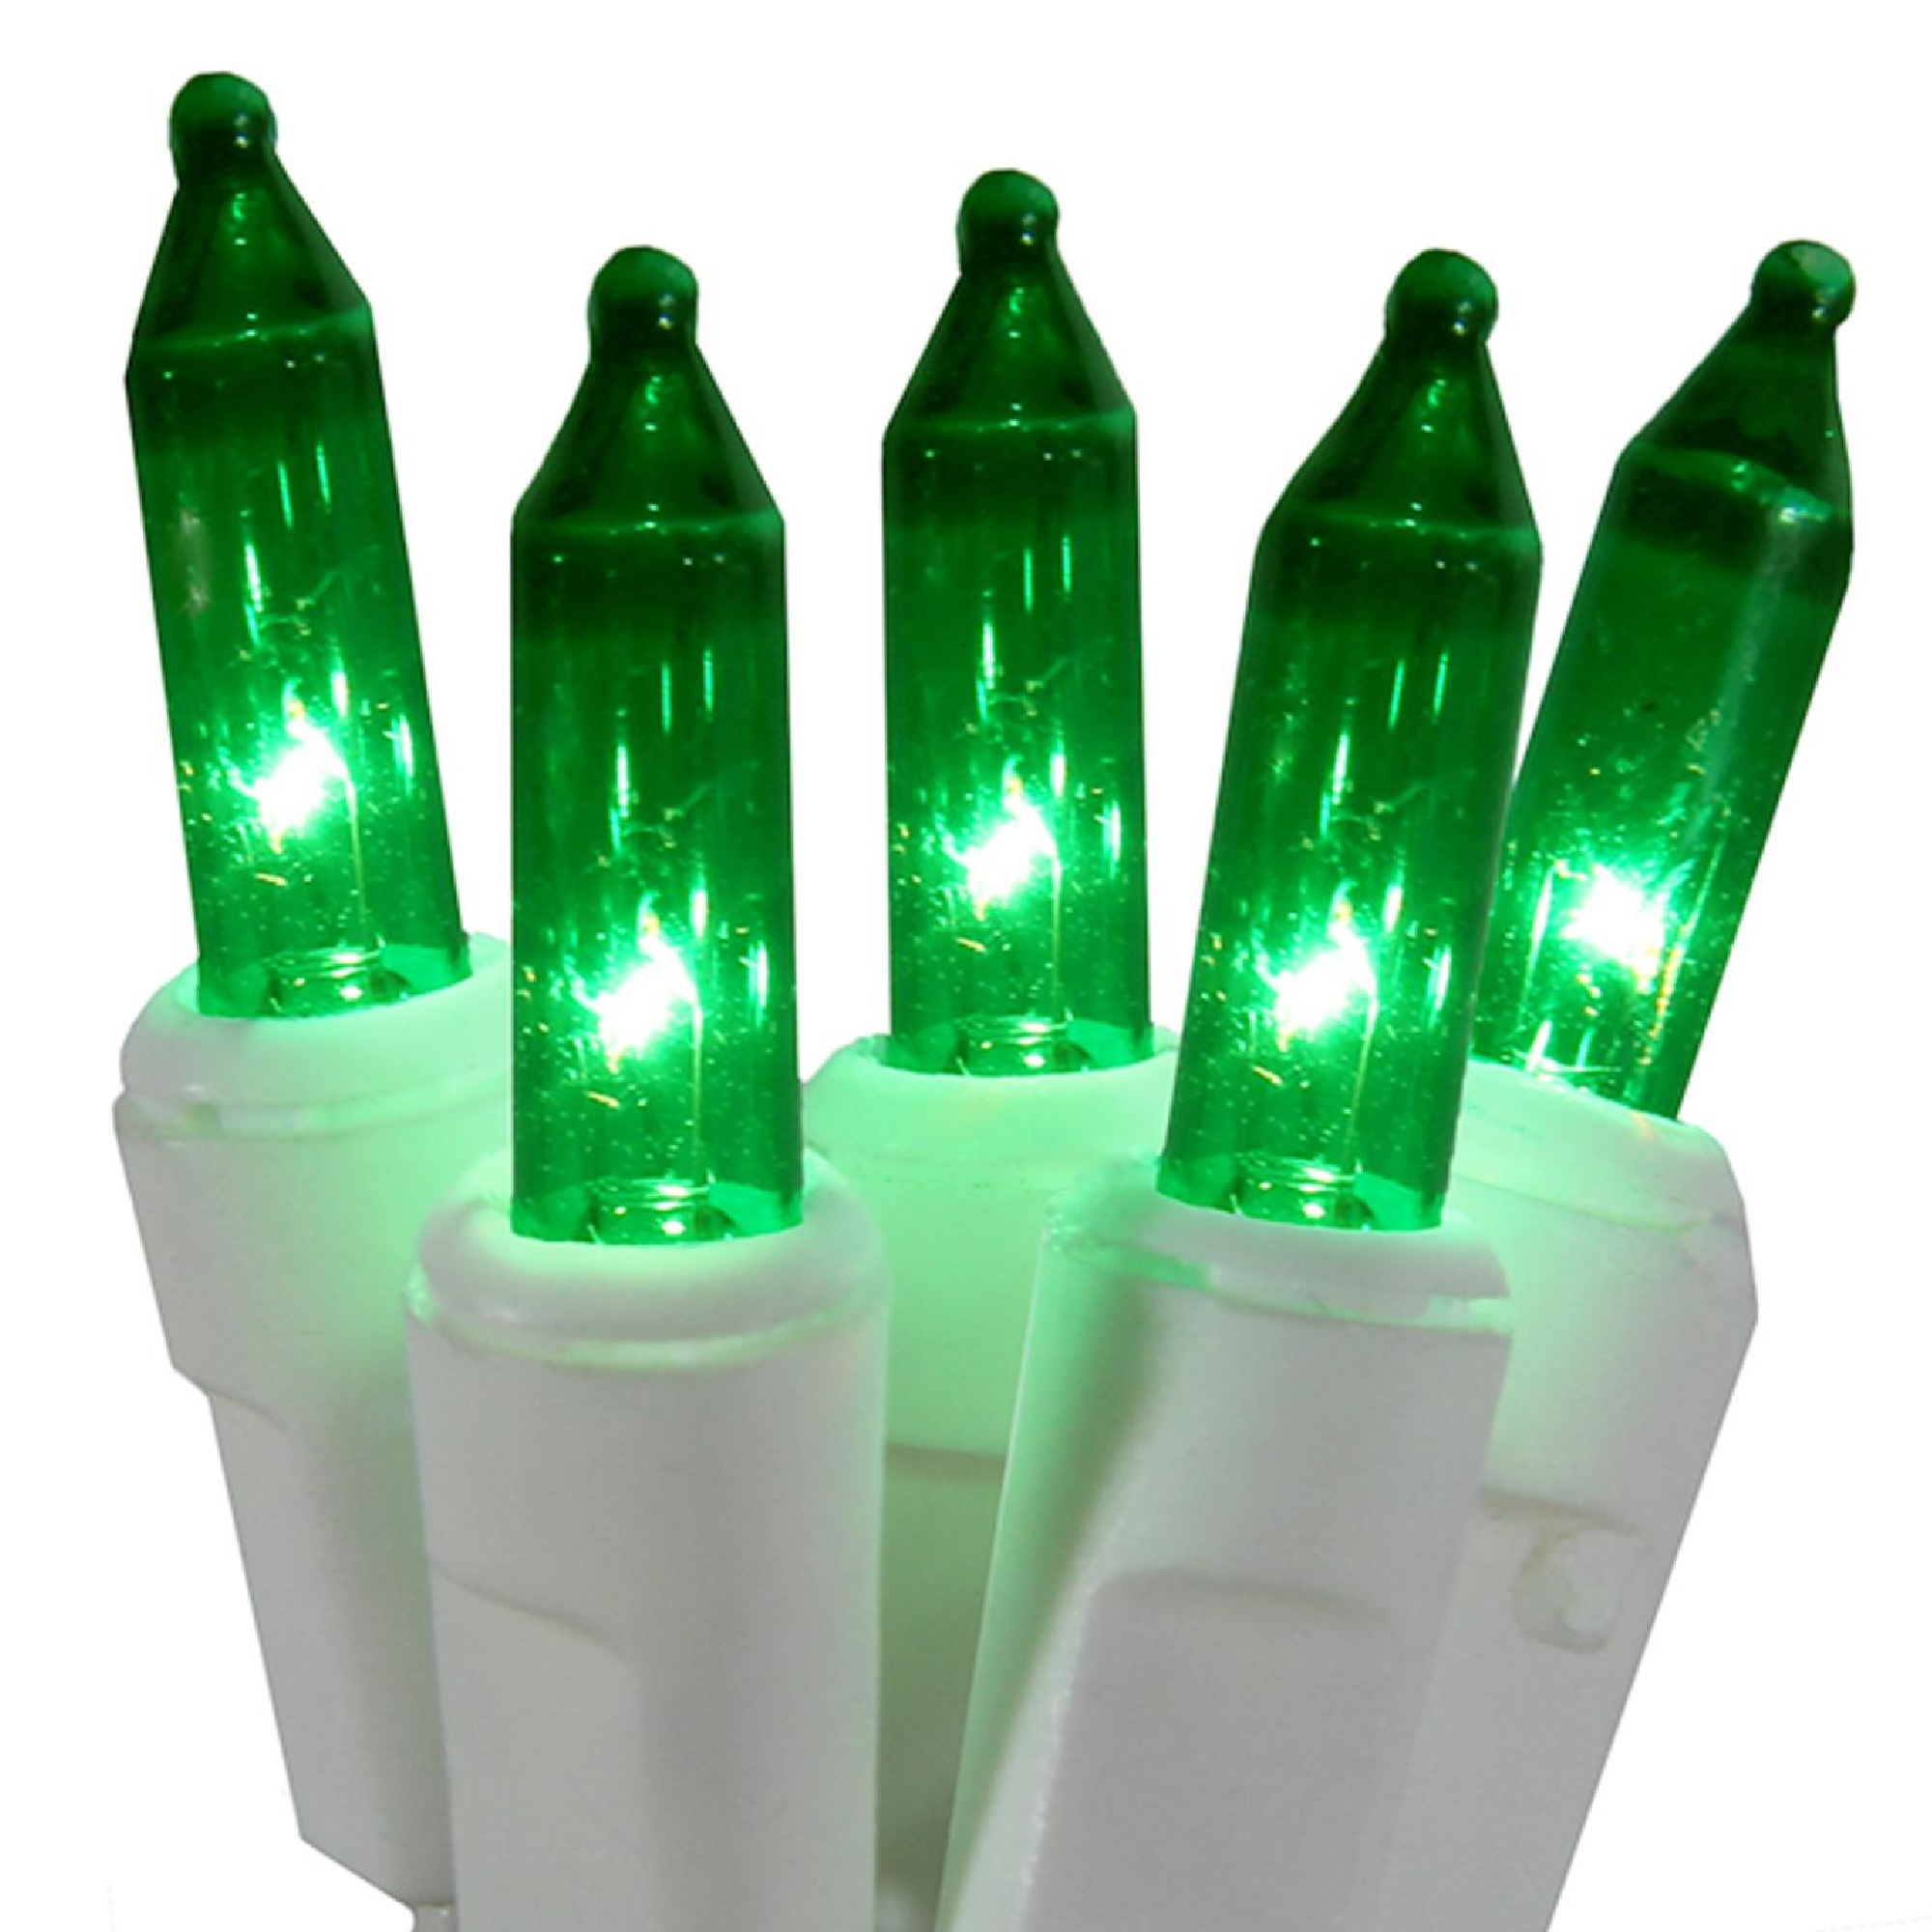 Northlight 100ct Mini Super Bright String Lights Green - 25' White Wire